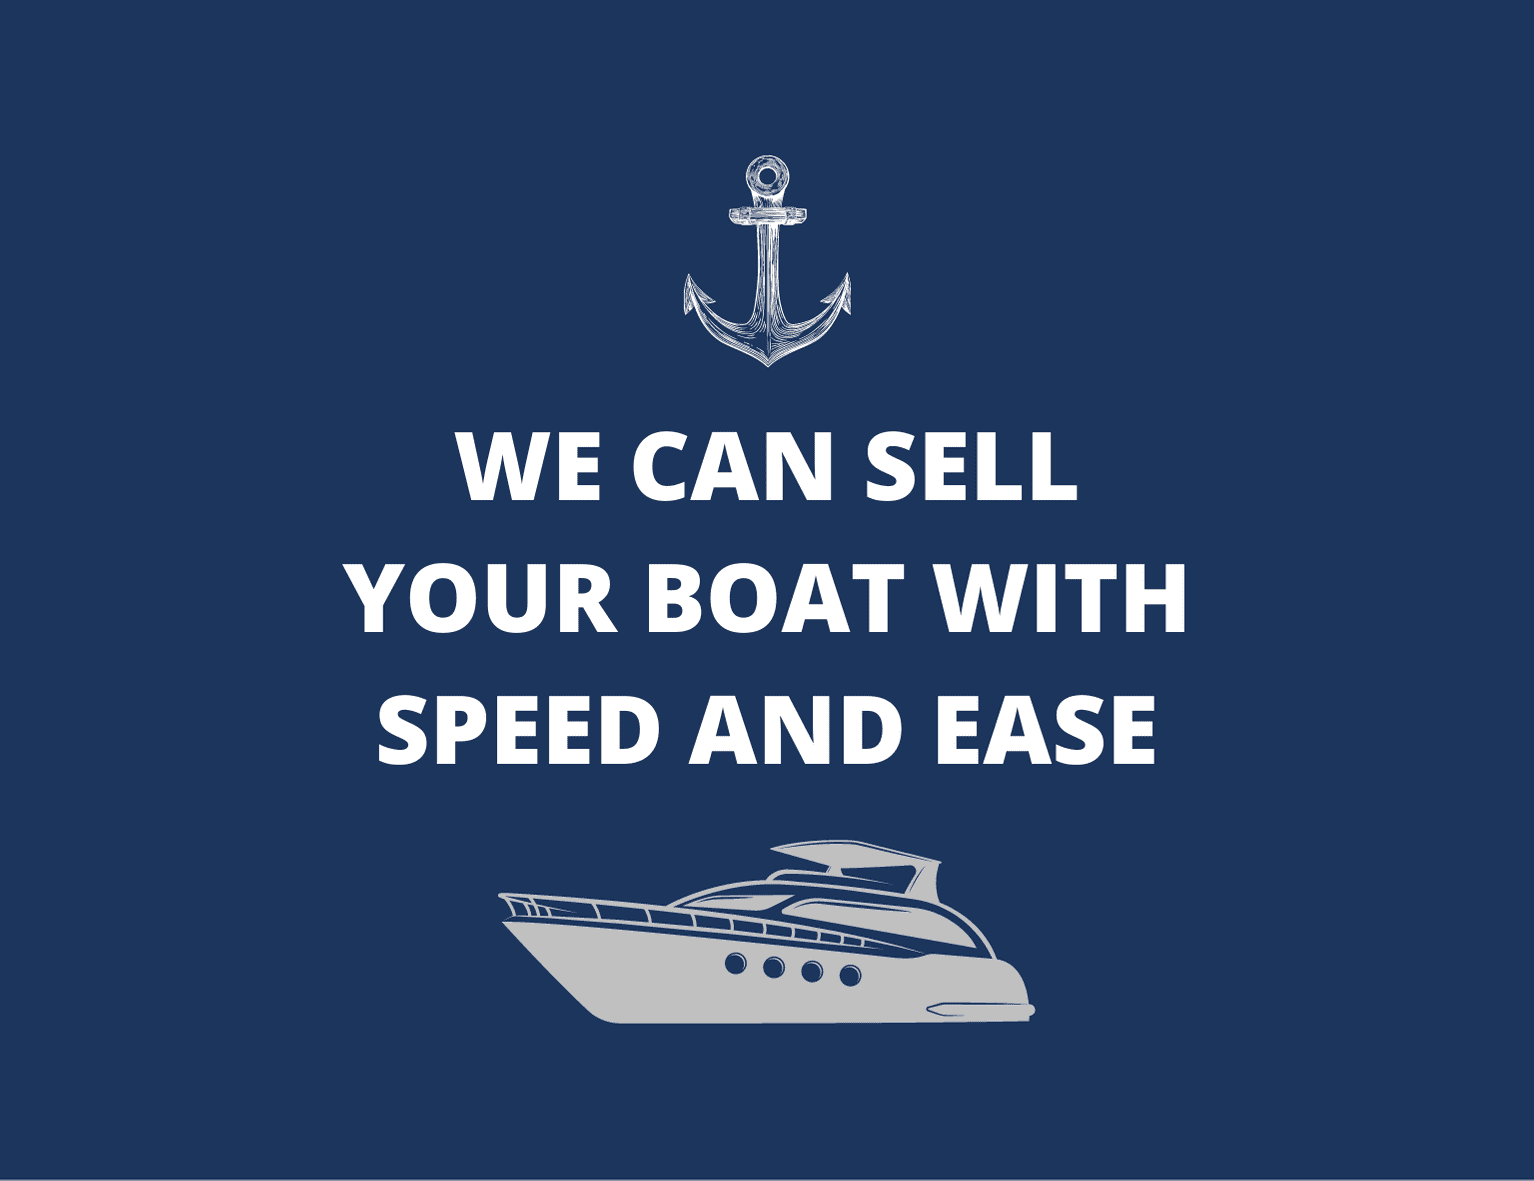 If you're thinking of selling or upgrading your boat or yacht